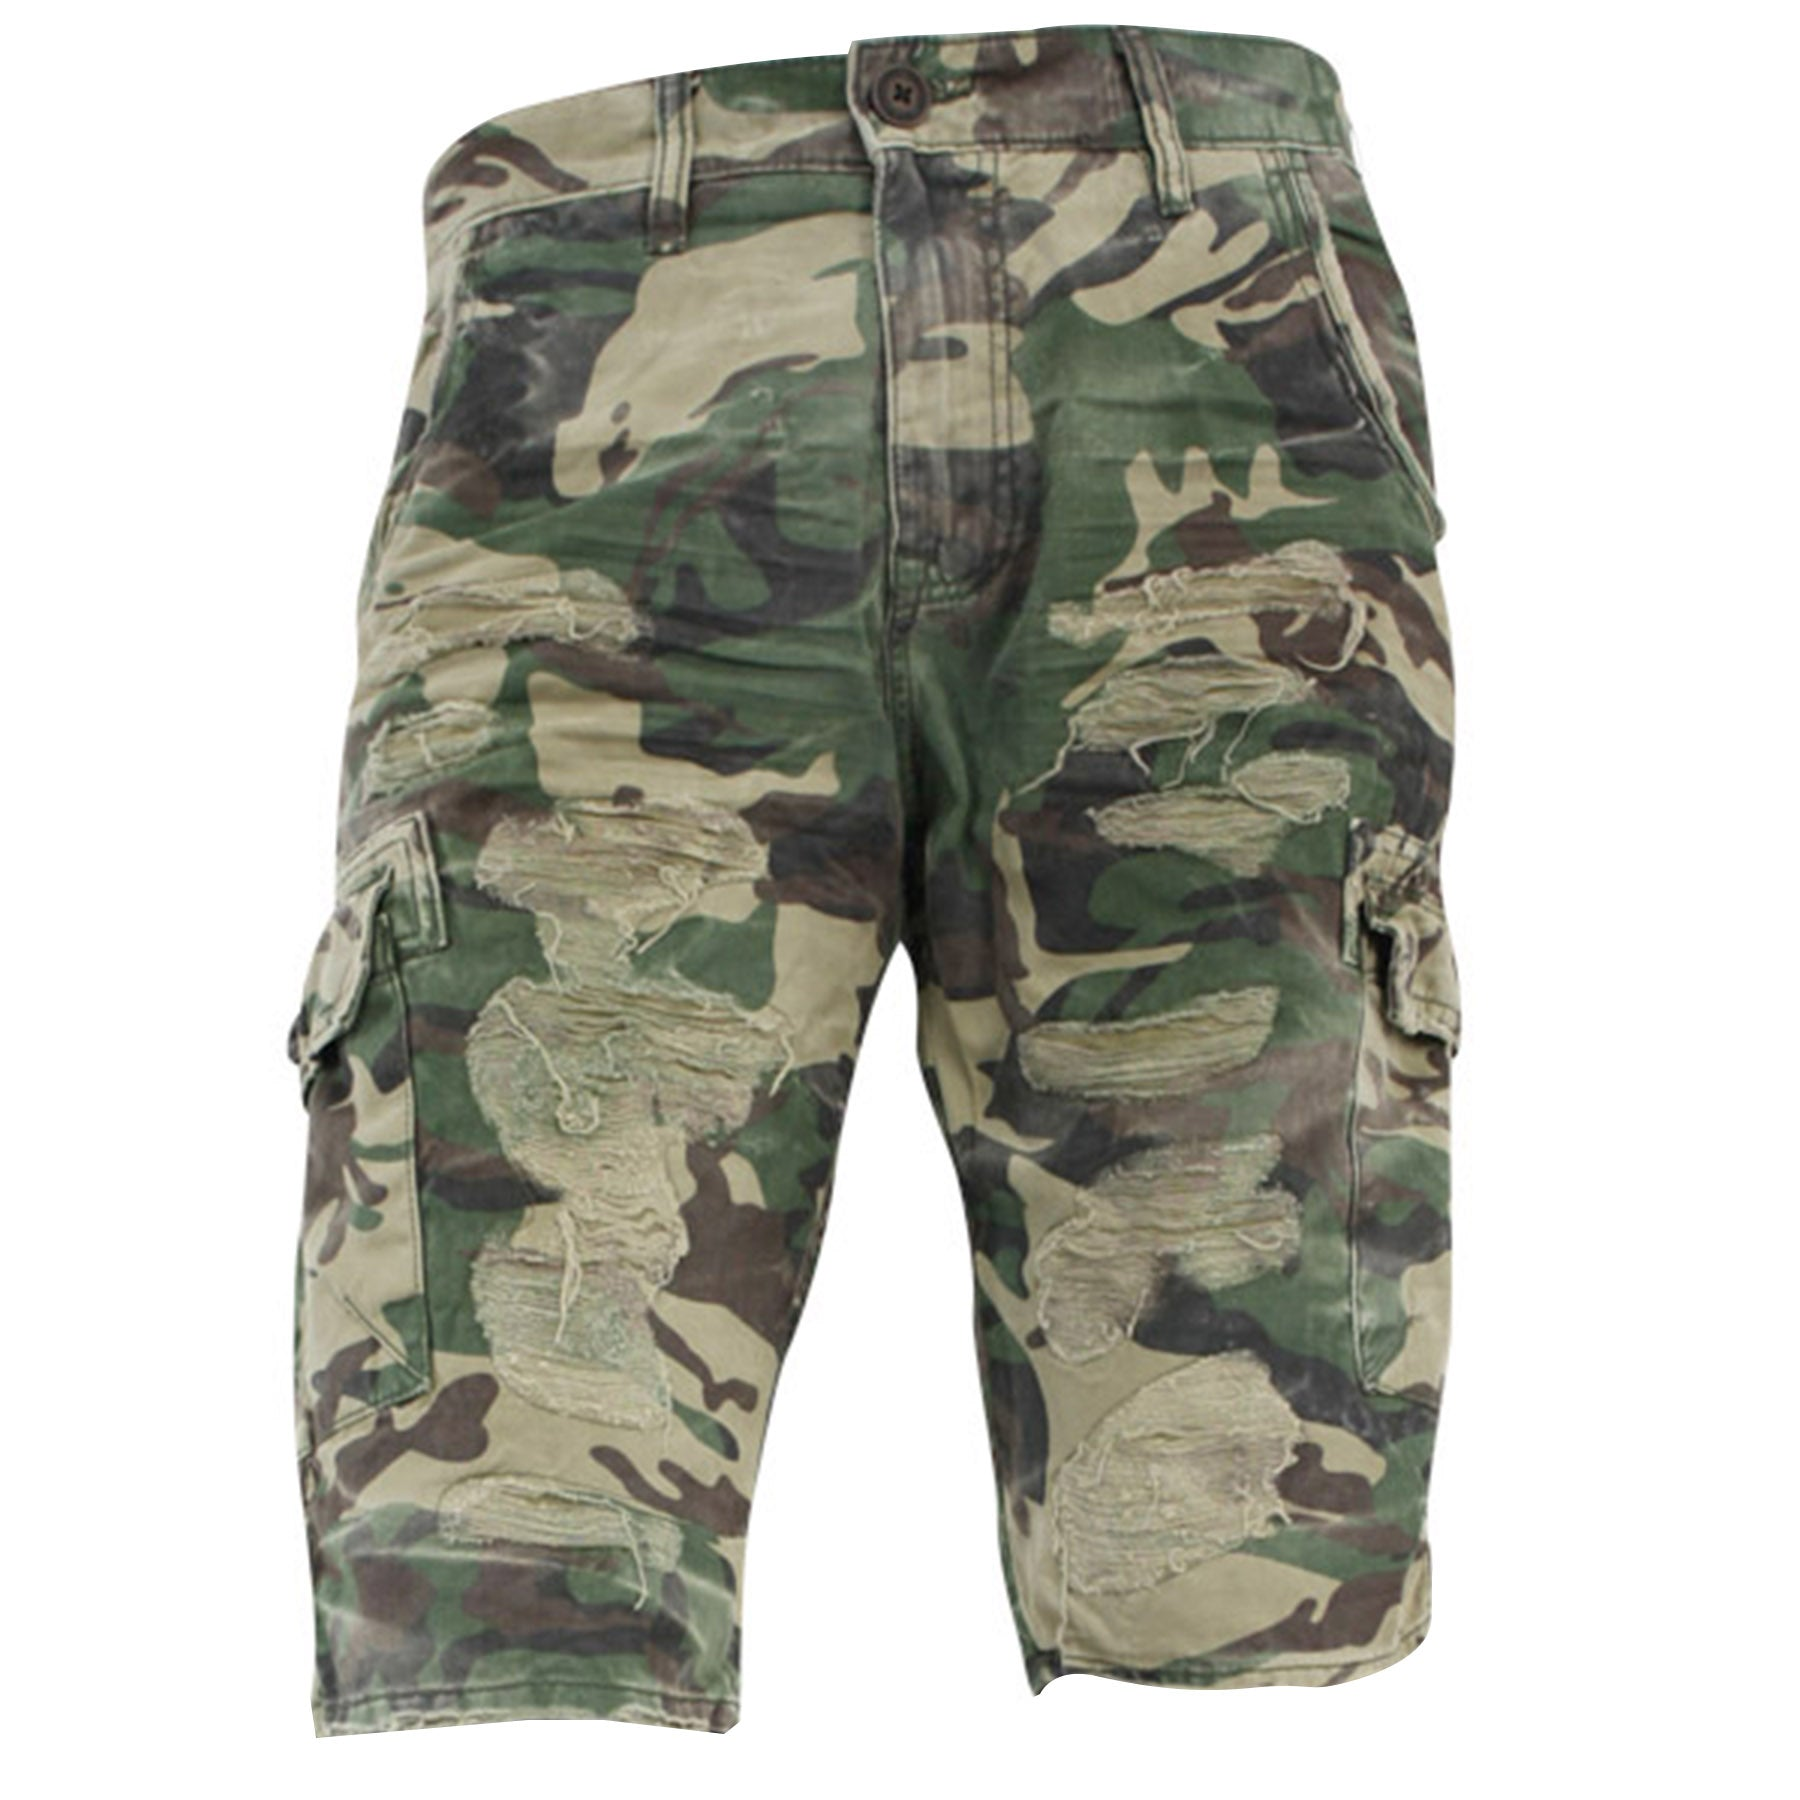 c9bf1f438b71 the camouflage distressed cargo shorts are camouflage with rips and tears  on the front